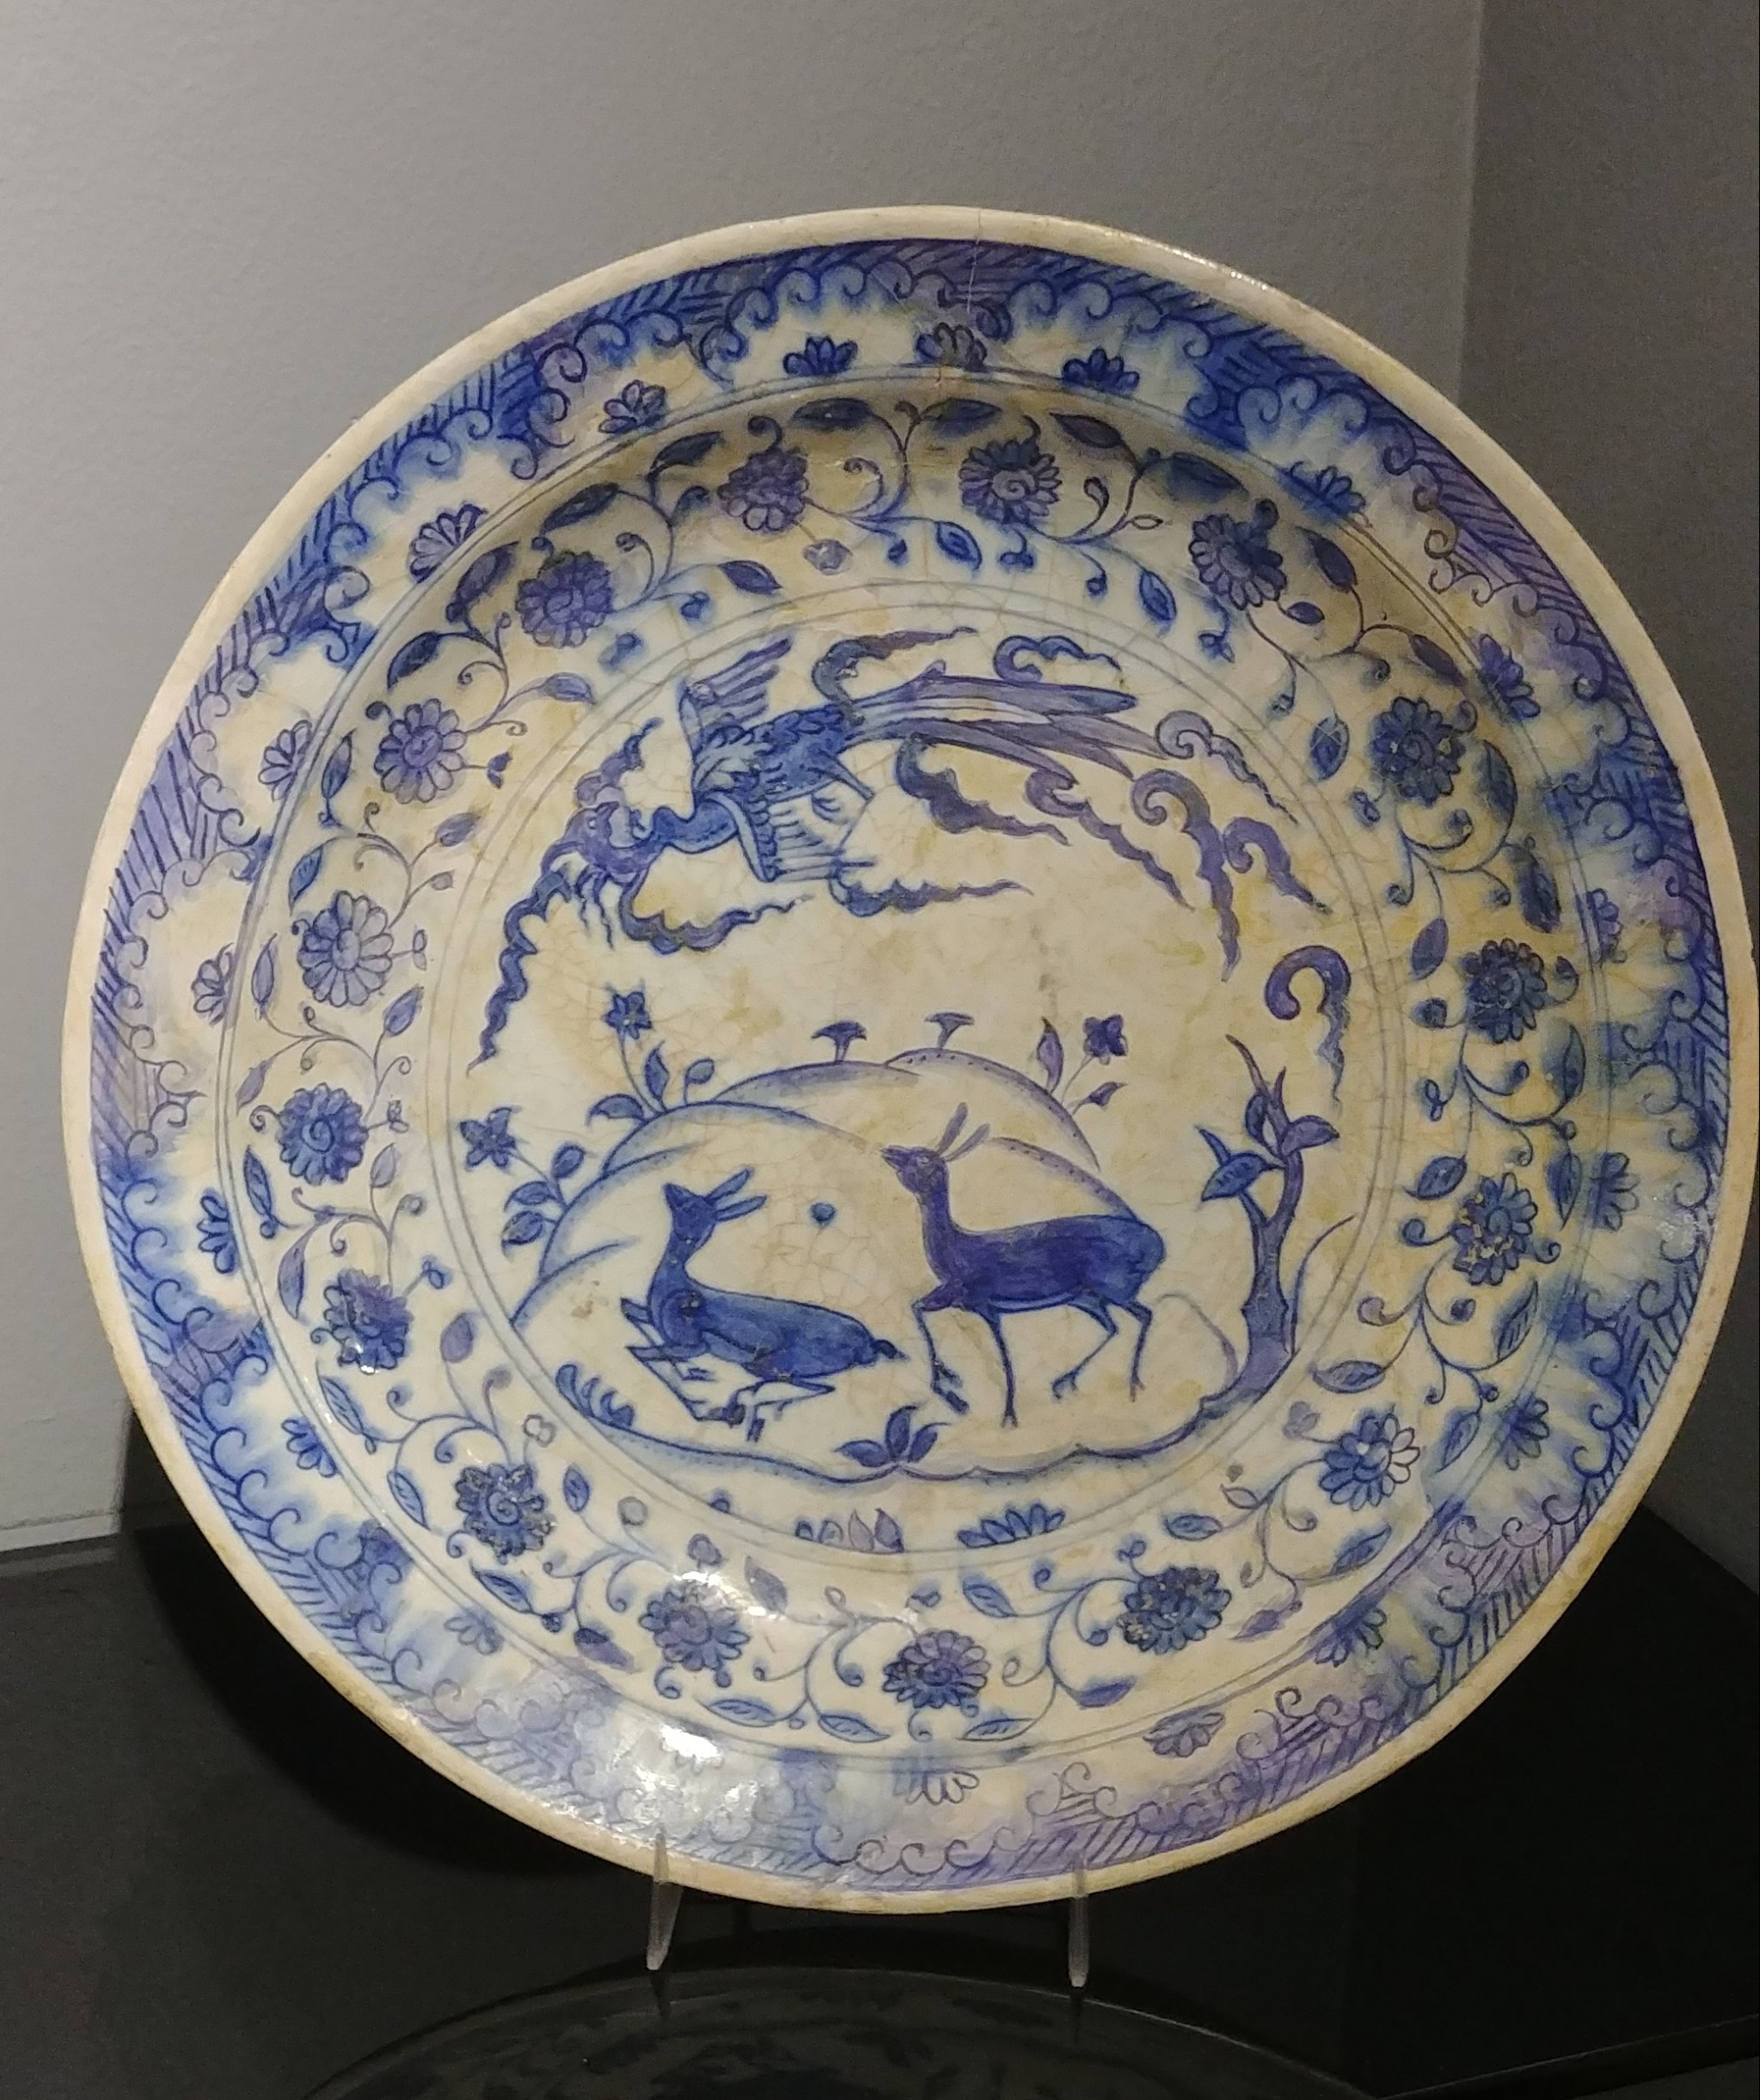 A Safavid Blue & White Pottery Plate, 17th century